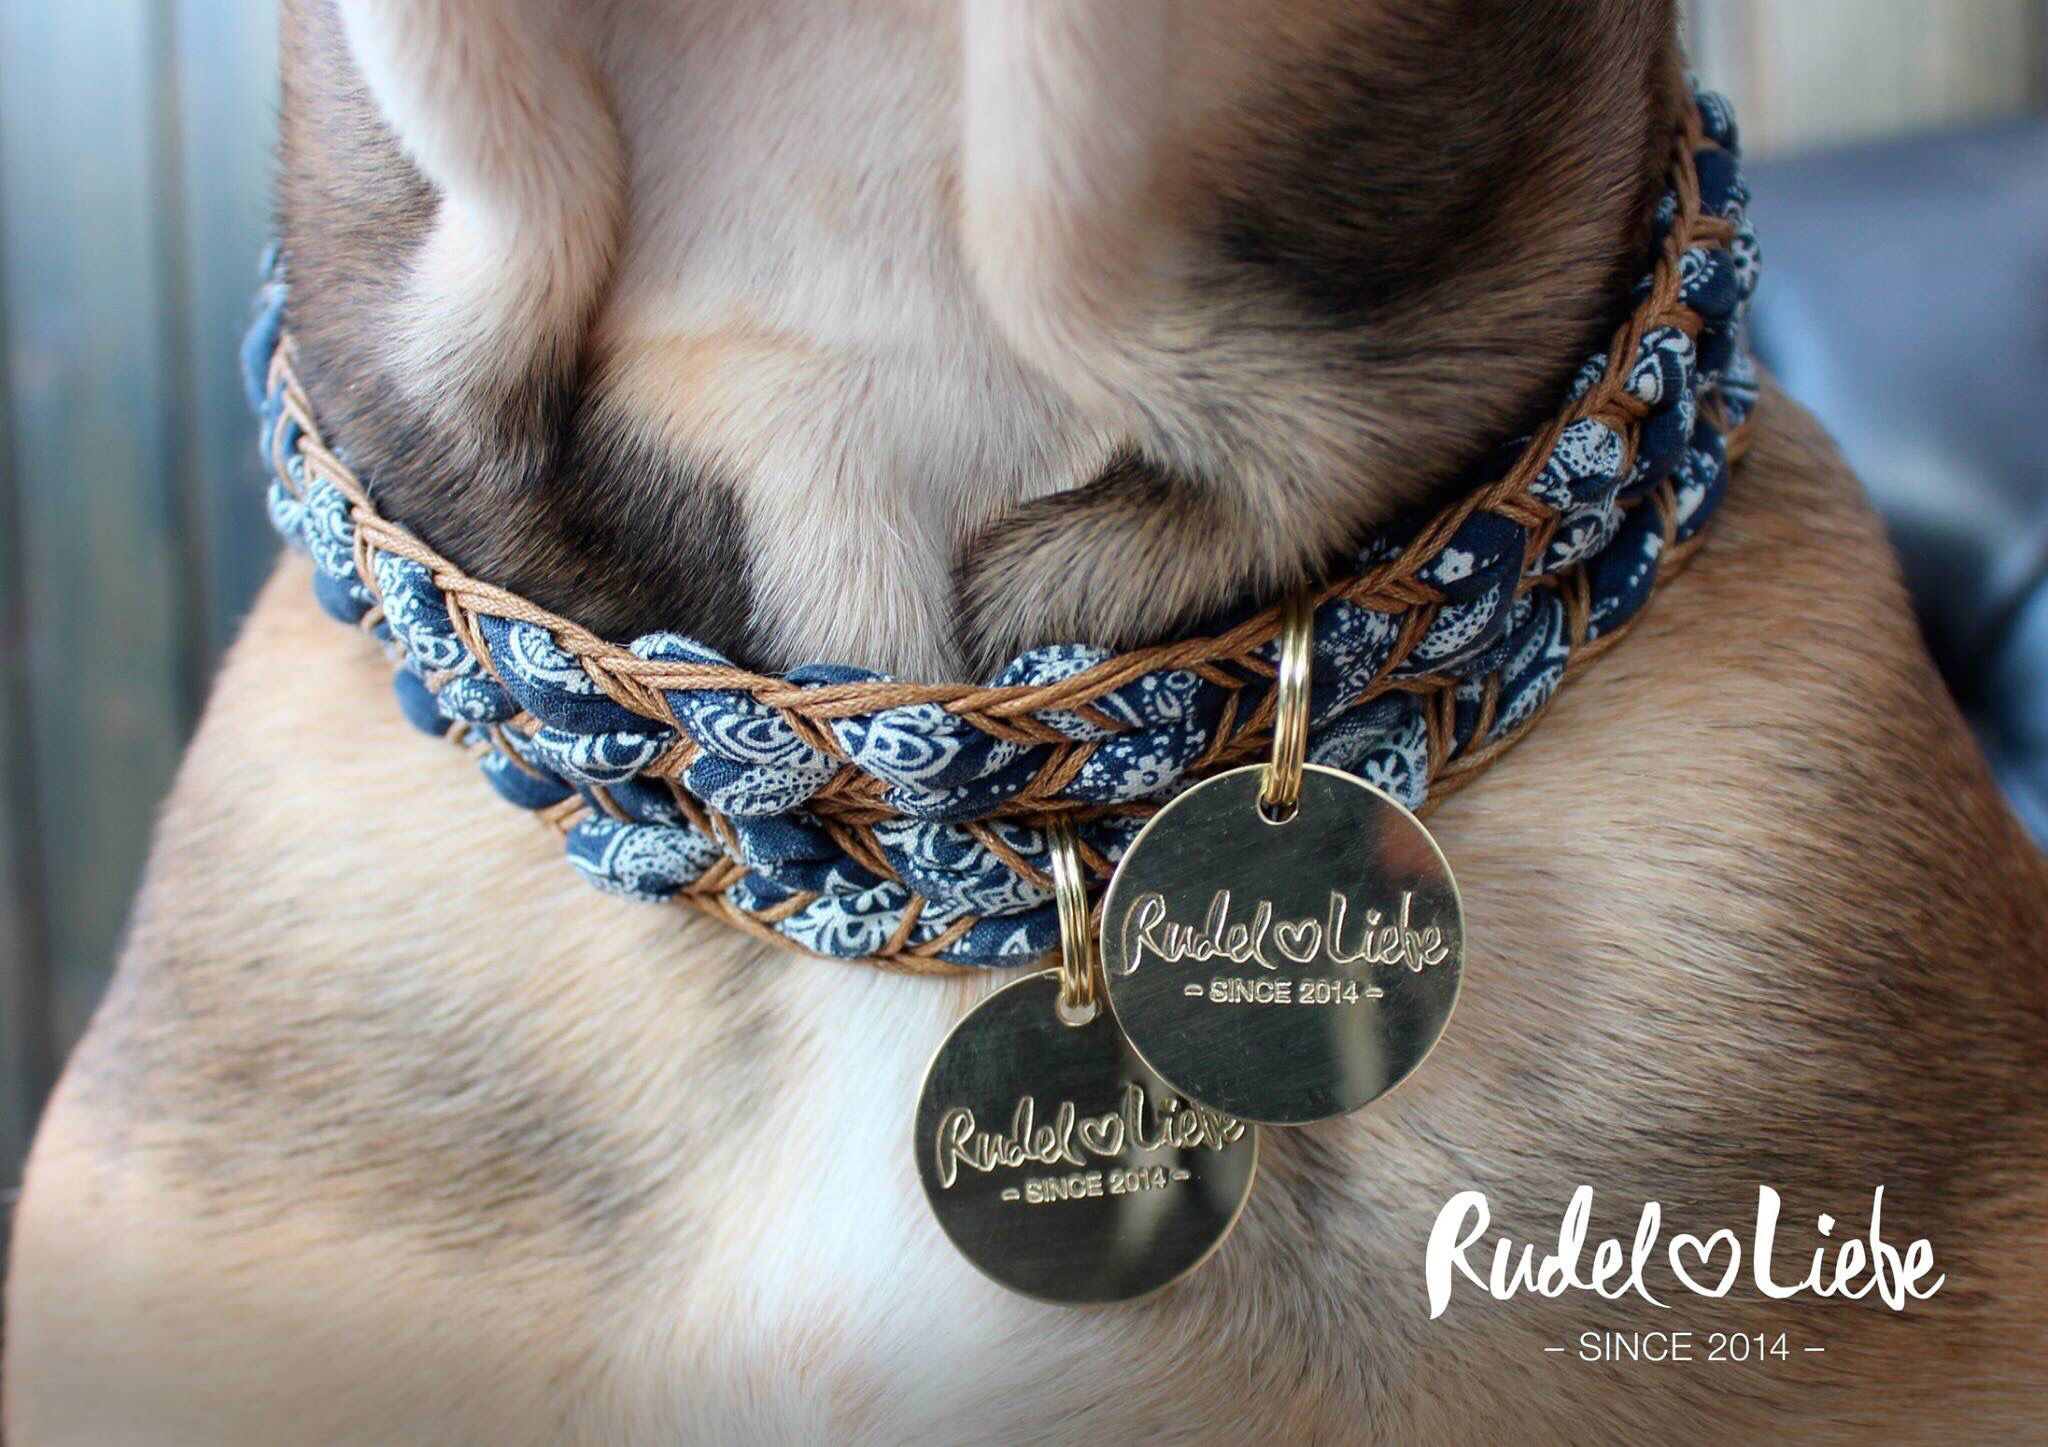 Bloom Dog Accessoire Www Rudelliebe De Halskette Hunde Hundehalskette Hund Bohodogcollars Hunde Accessoires Hundehalsband Hunde